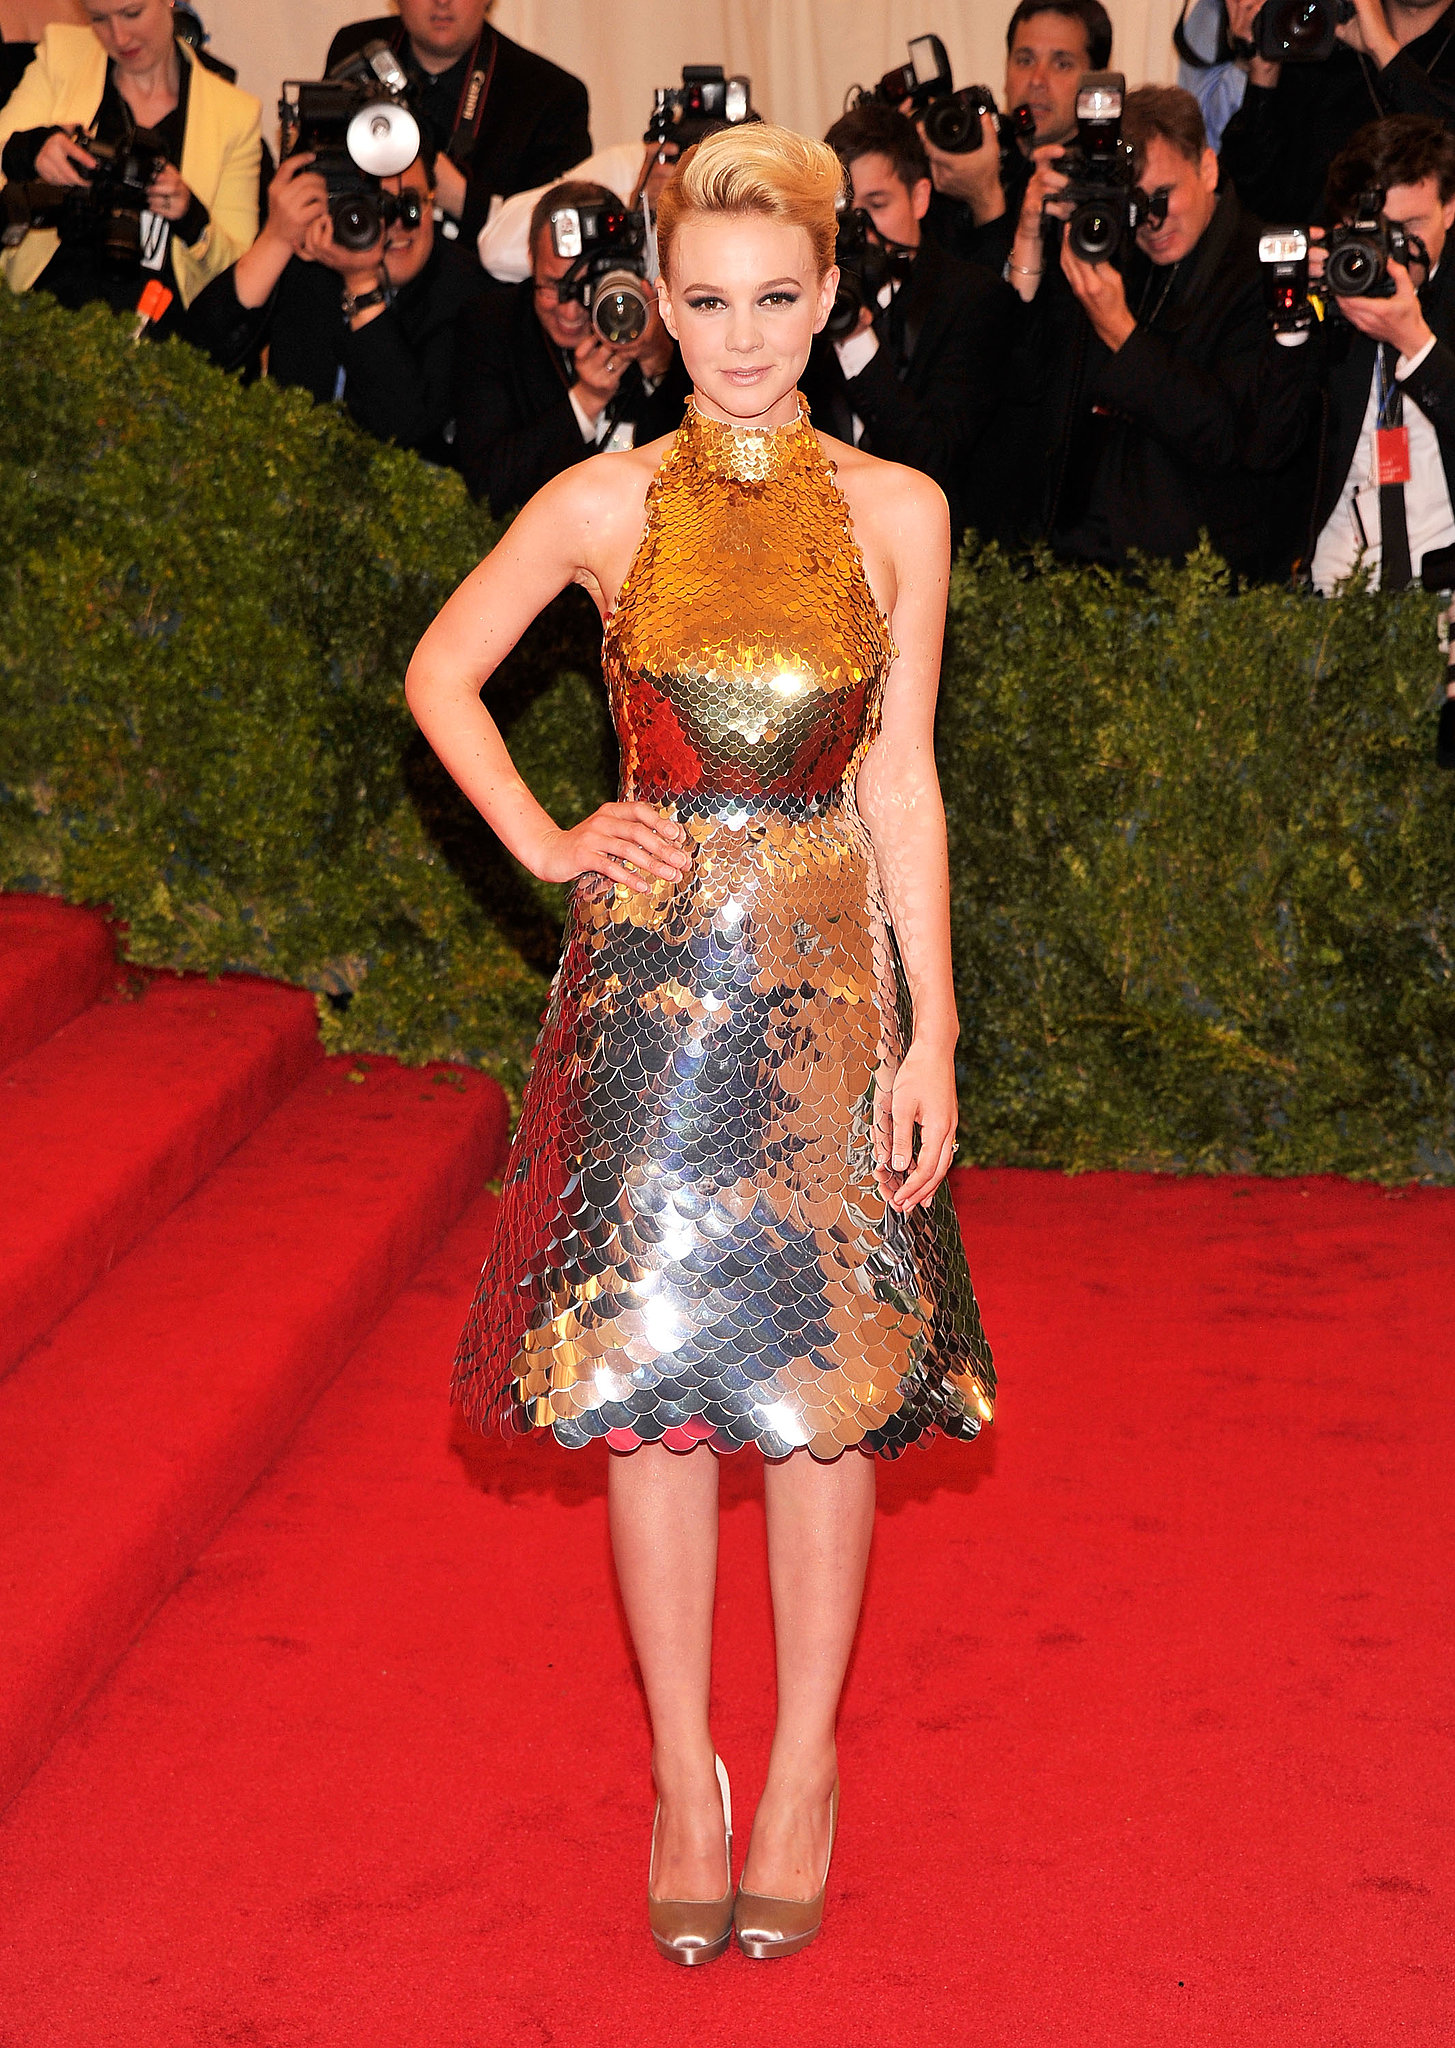 Carey Mulligan in Metallic Prada at the 2012 Met Gala